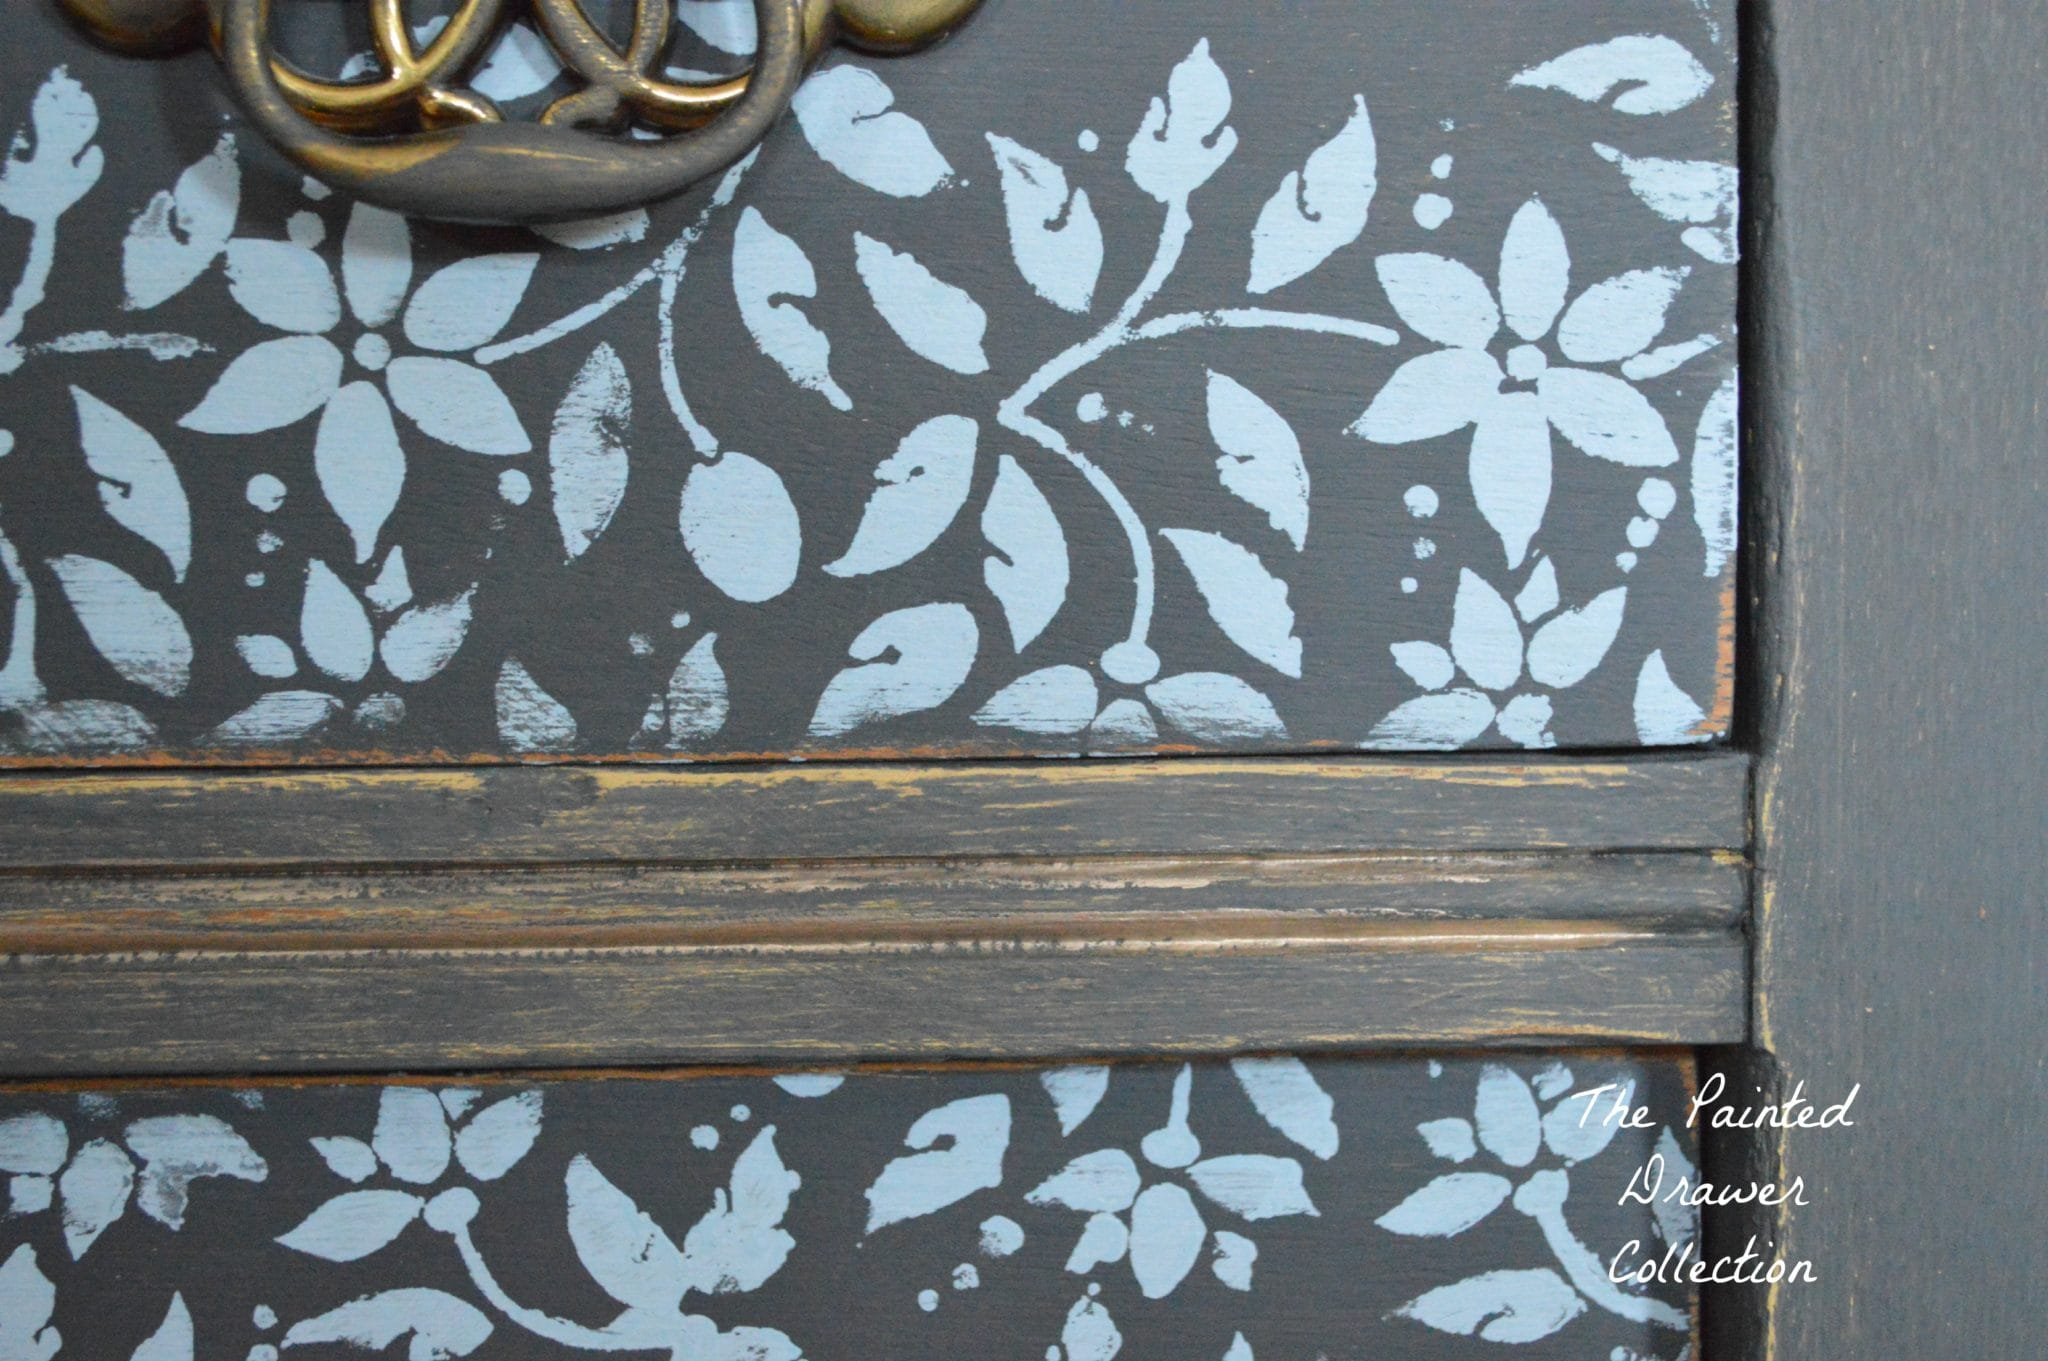 Graphite farmhouse Stenciled Dresser www.thepainteddrawer.com